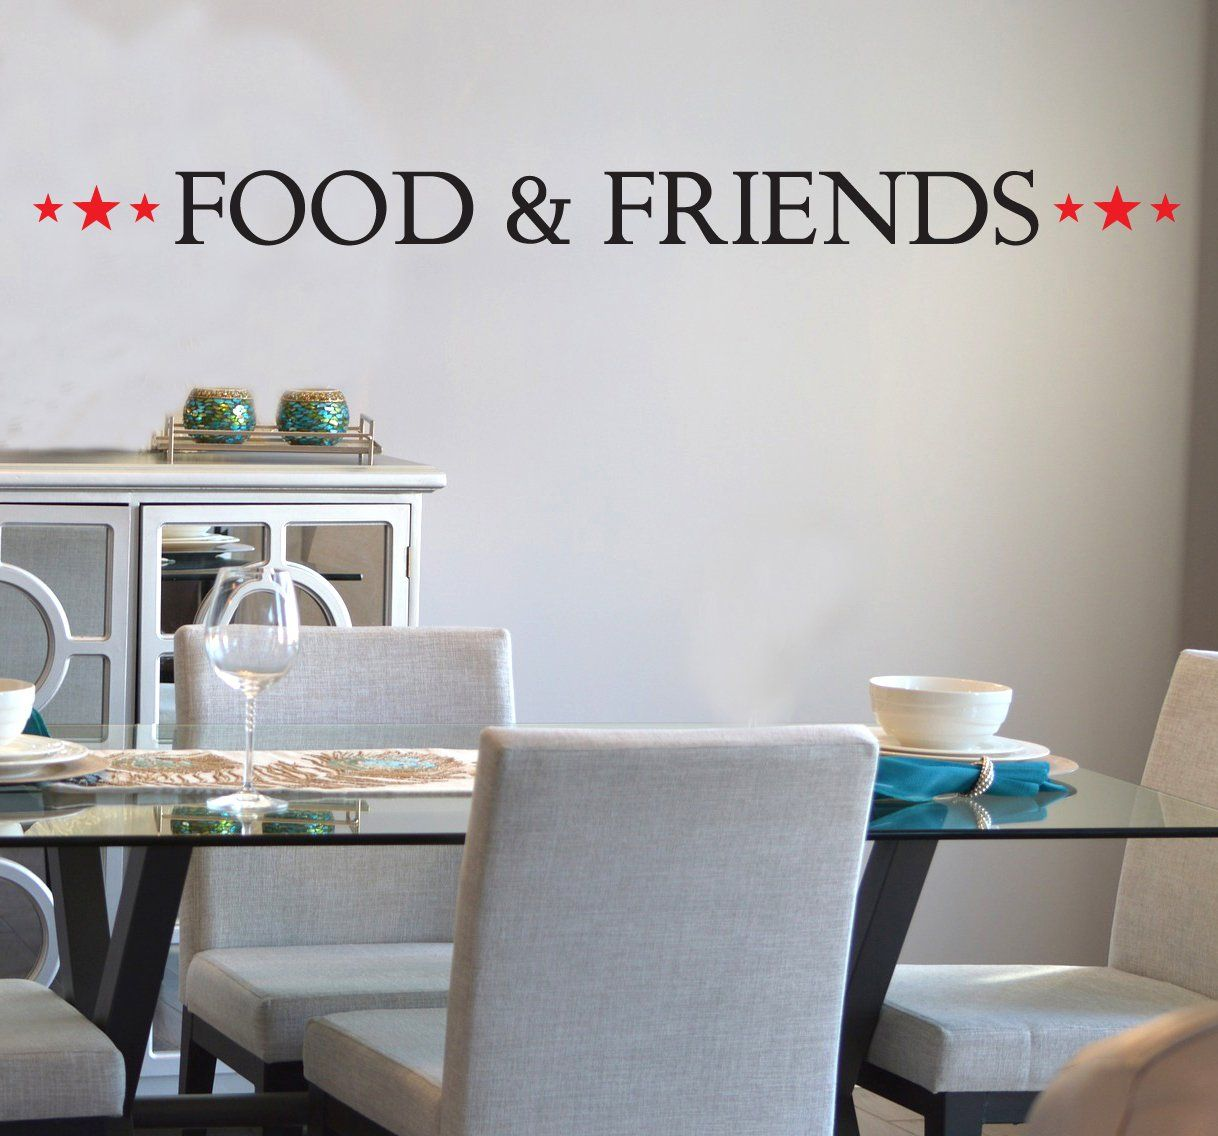 food and friends decal, kitchen wall decal, kitchen decal, dining